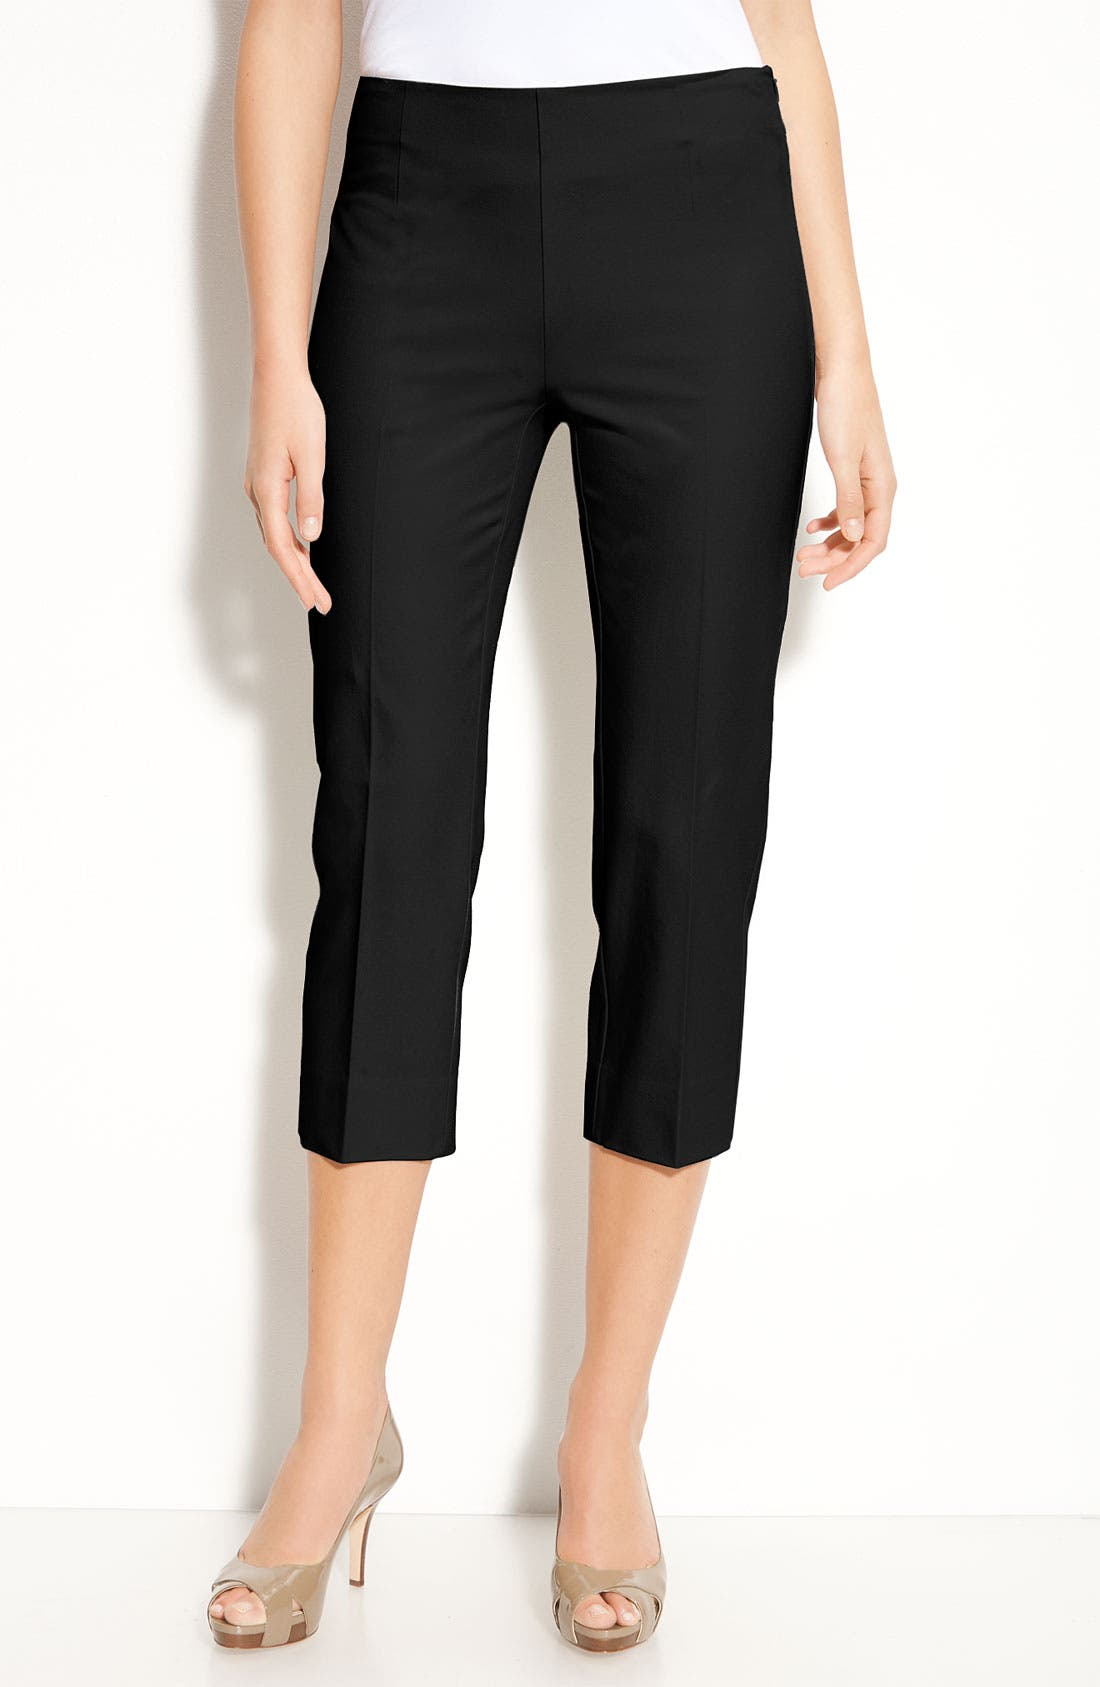 Alternate Image 1 Selected - Gallia Moda Side Zip Crop Pants